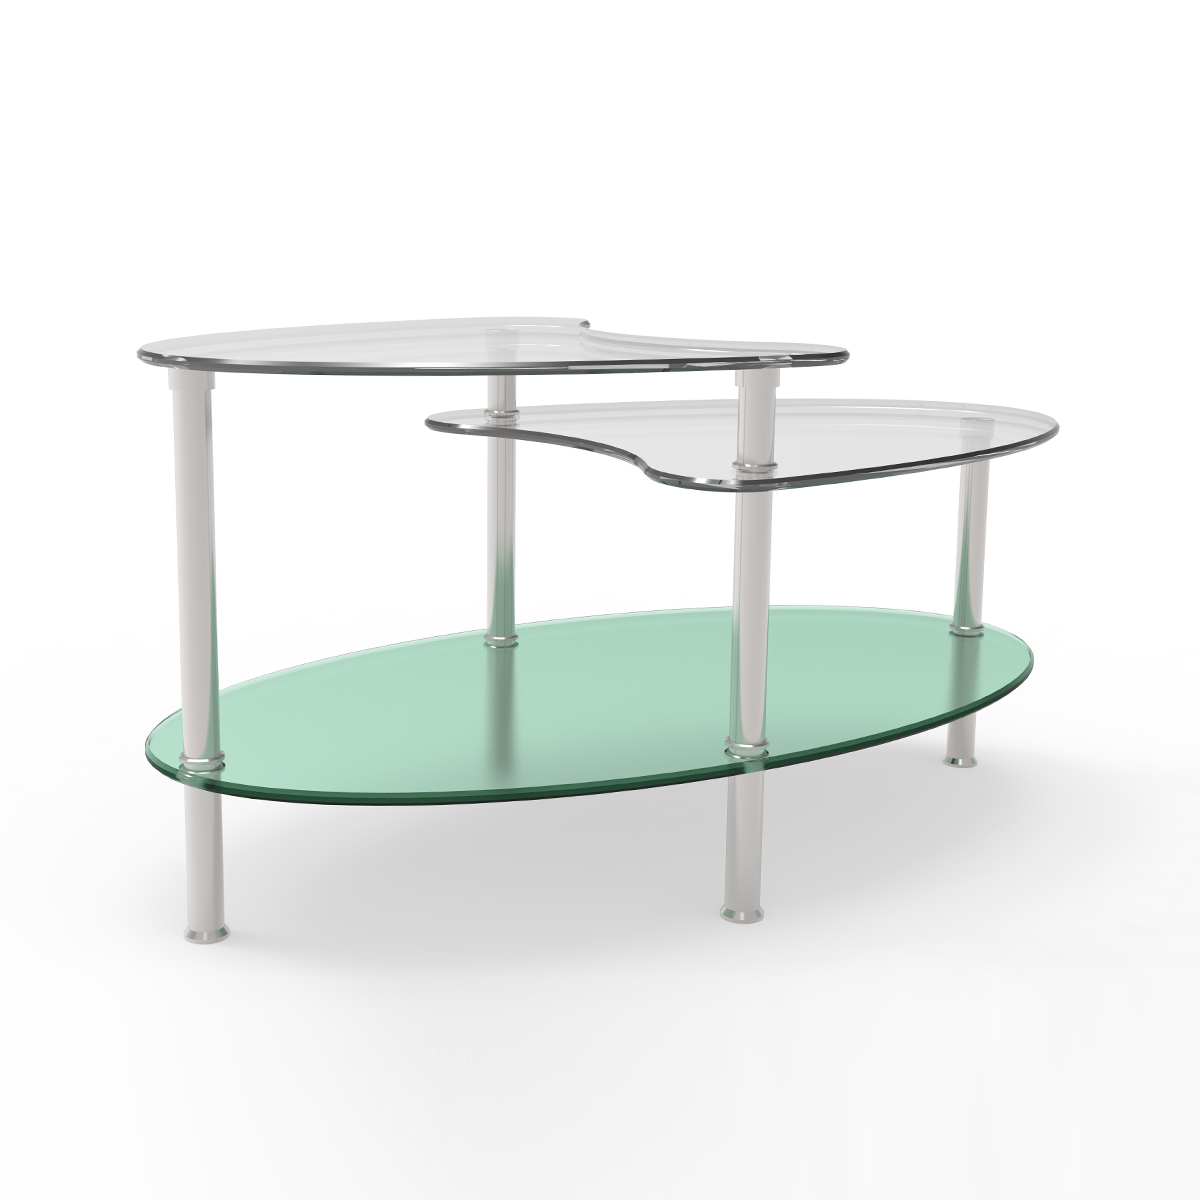 Ryan rove becca 38 inch oval two tier glass coffee table for Oval glass coffee table